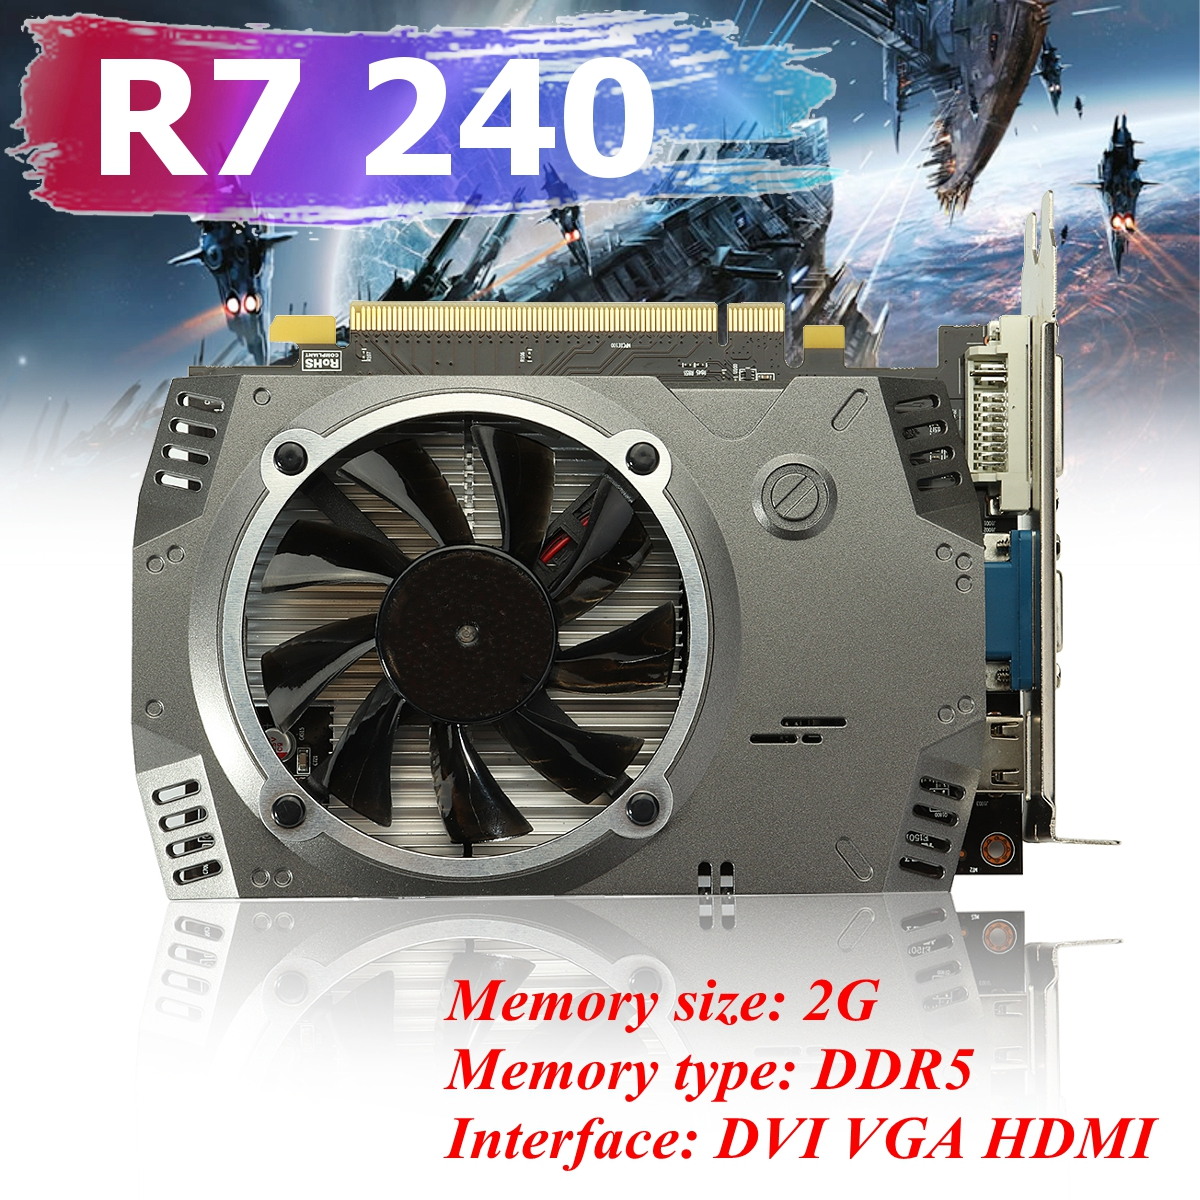 Original R7 240 GPU 2G GDDR5 128bit Gaming Desktop Graphics Card PC Video Graphics Cards Support VGA/DVI/HDMI железная дорога yako останови крушение